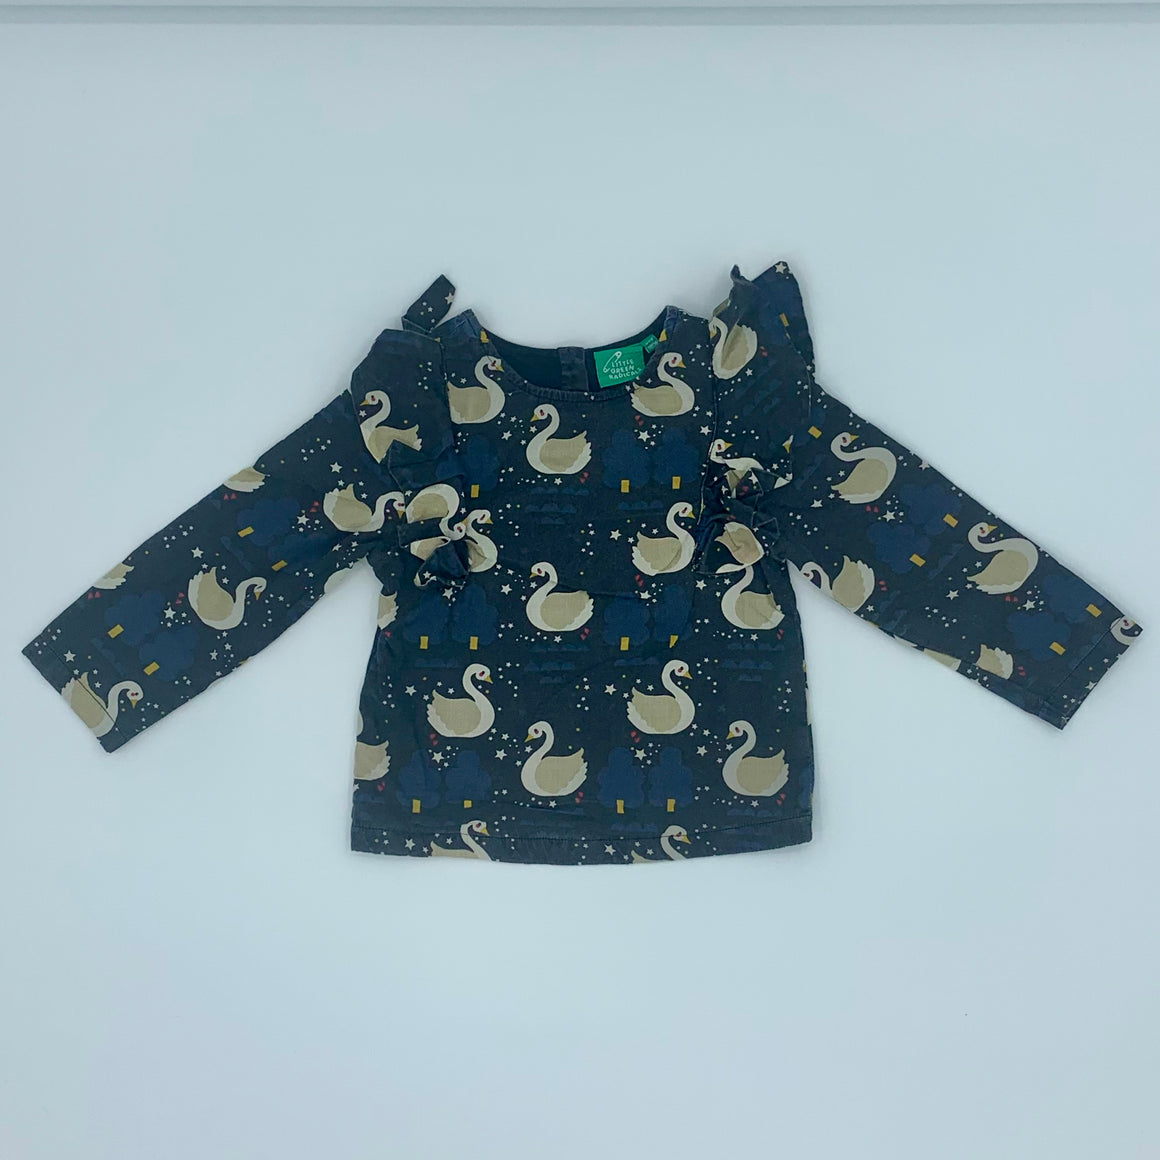 Needs TLC Little Green Radicals black swan ruffle top size 4-5 years